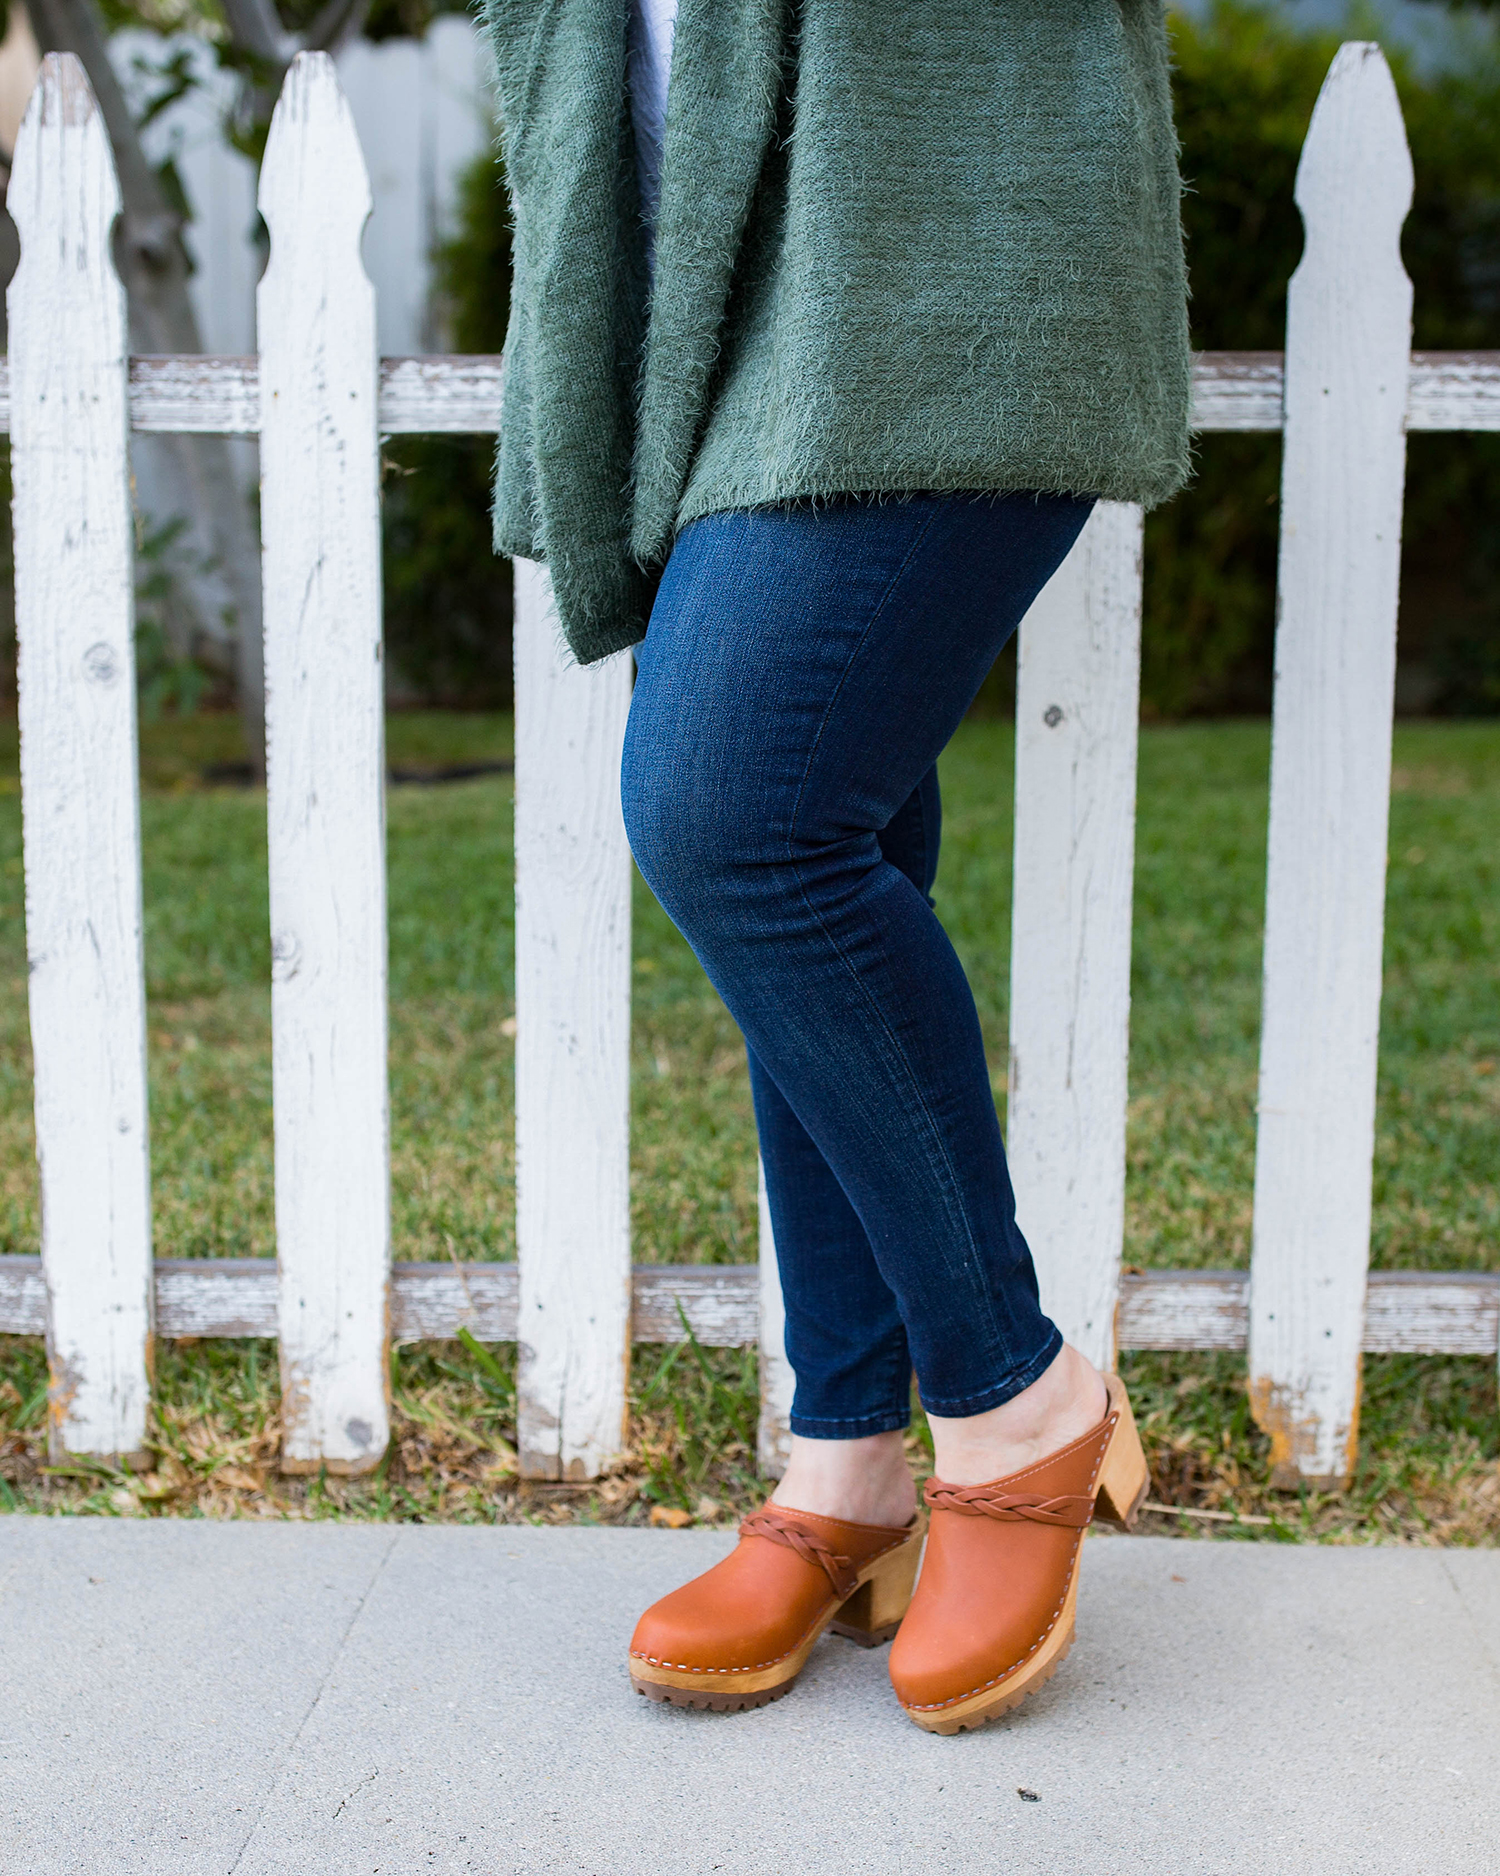 Amazon Prime Wardrobe: Have you tried it yet? I love these brown clogs....they're the perfect fall shoes!